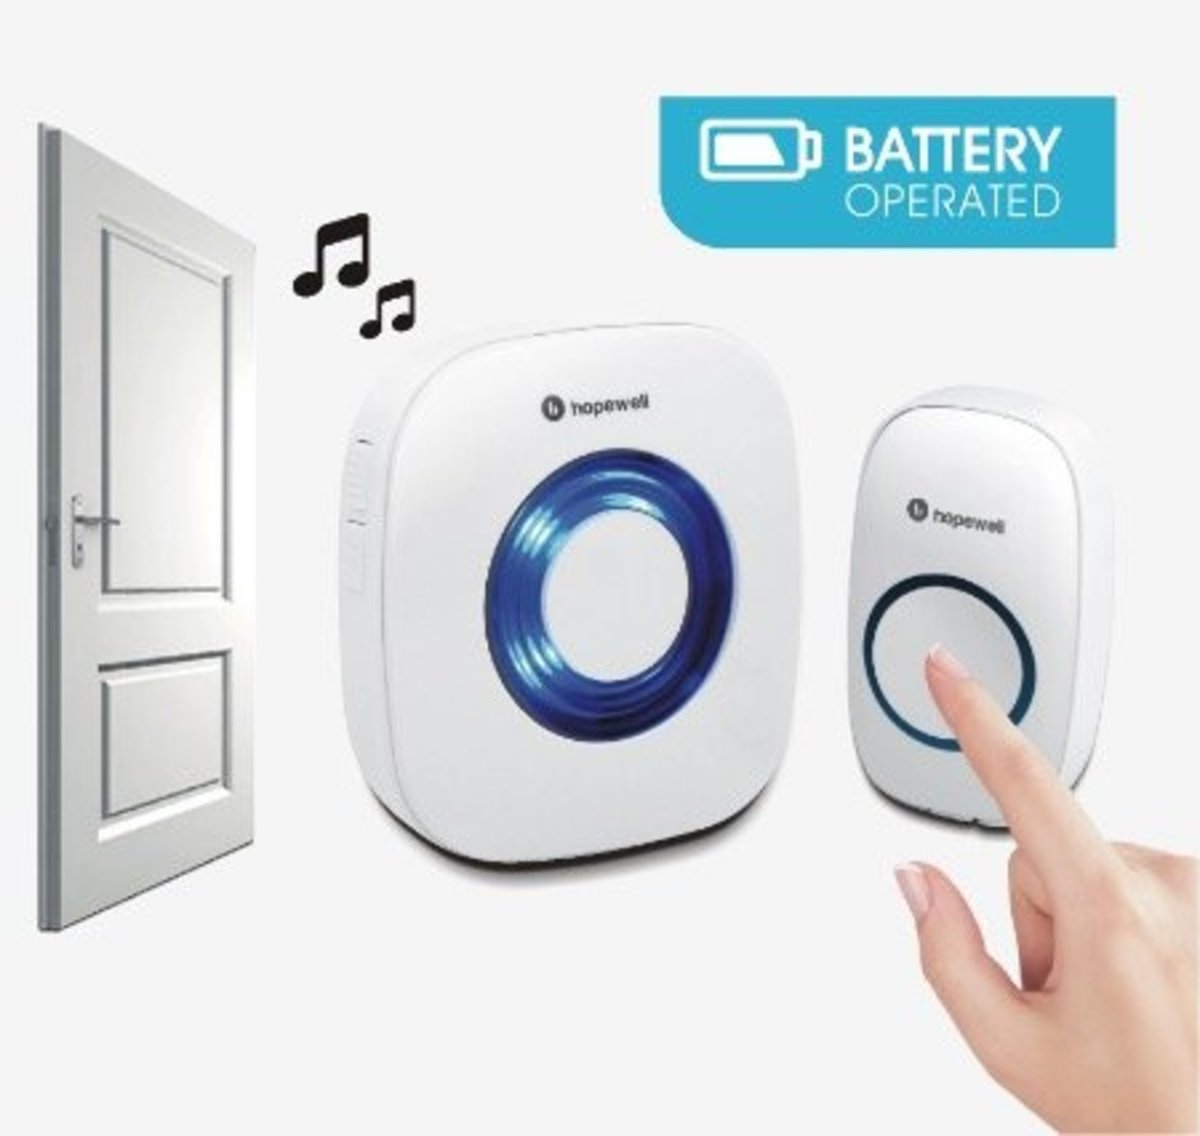 200m Battery Operated Wireless Doorbell[DK-1]